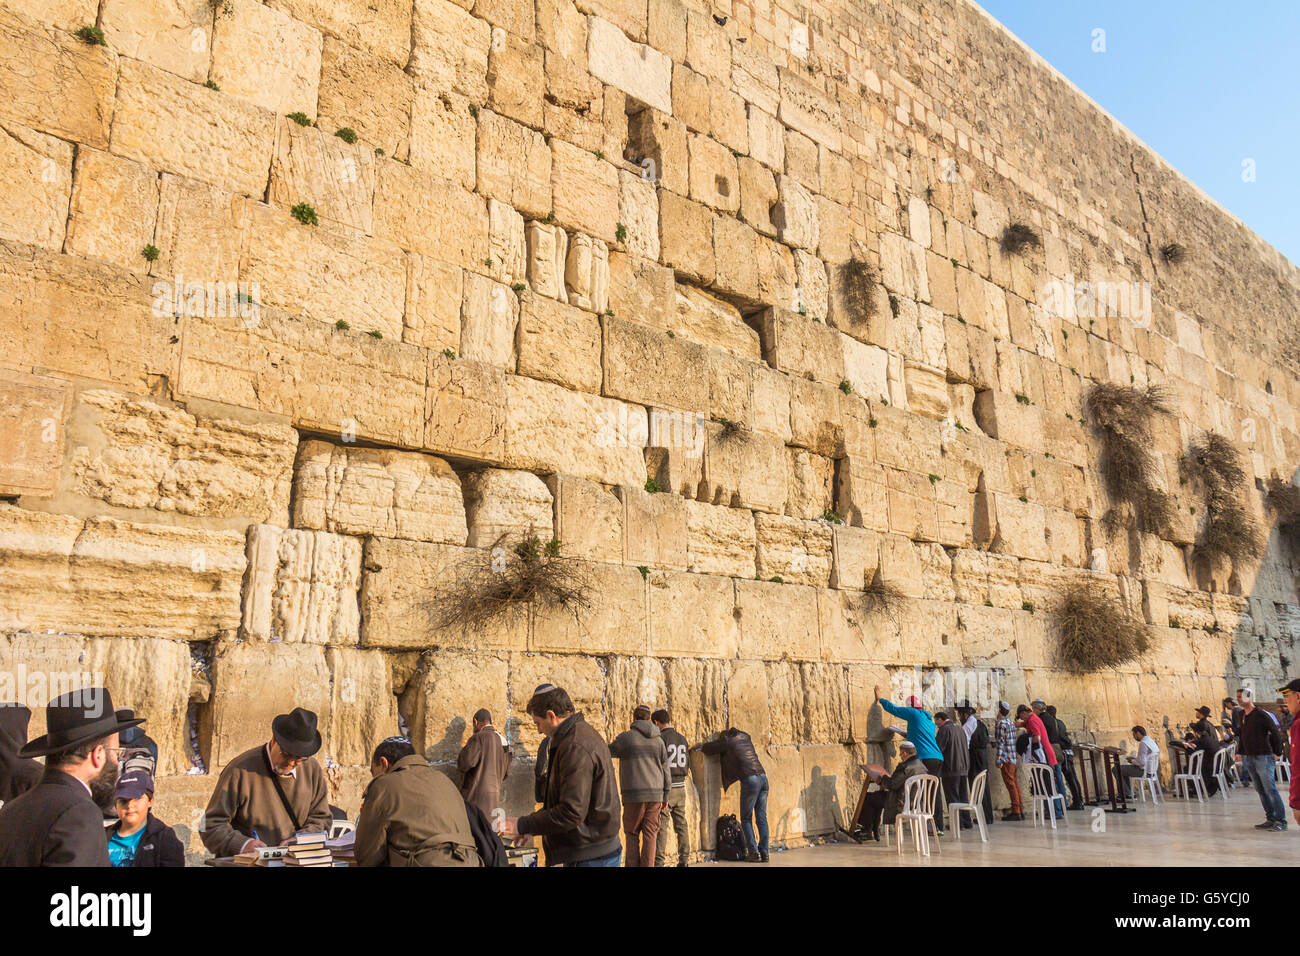 The wailing wall in Jerusalem - Stock Image